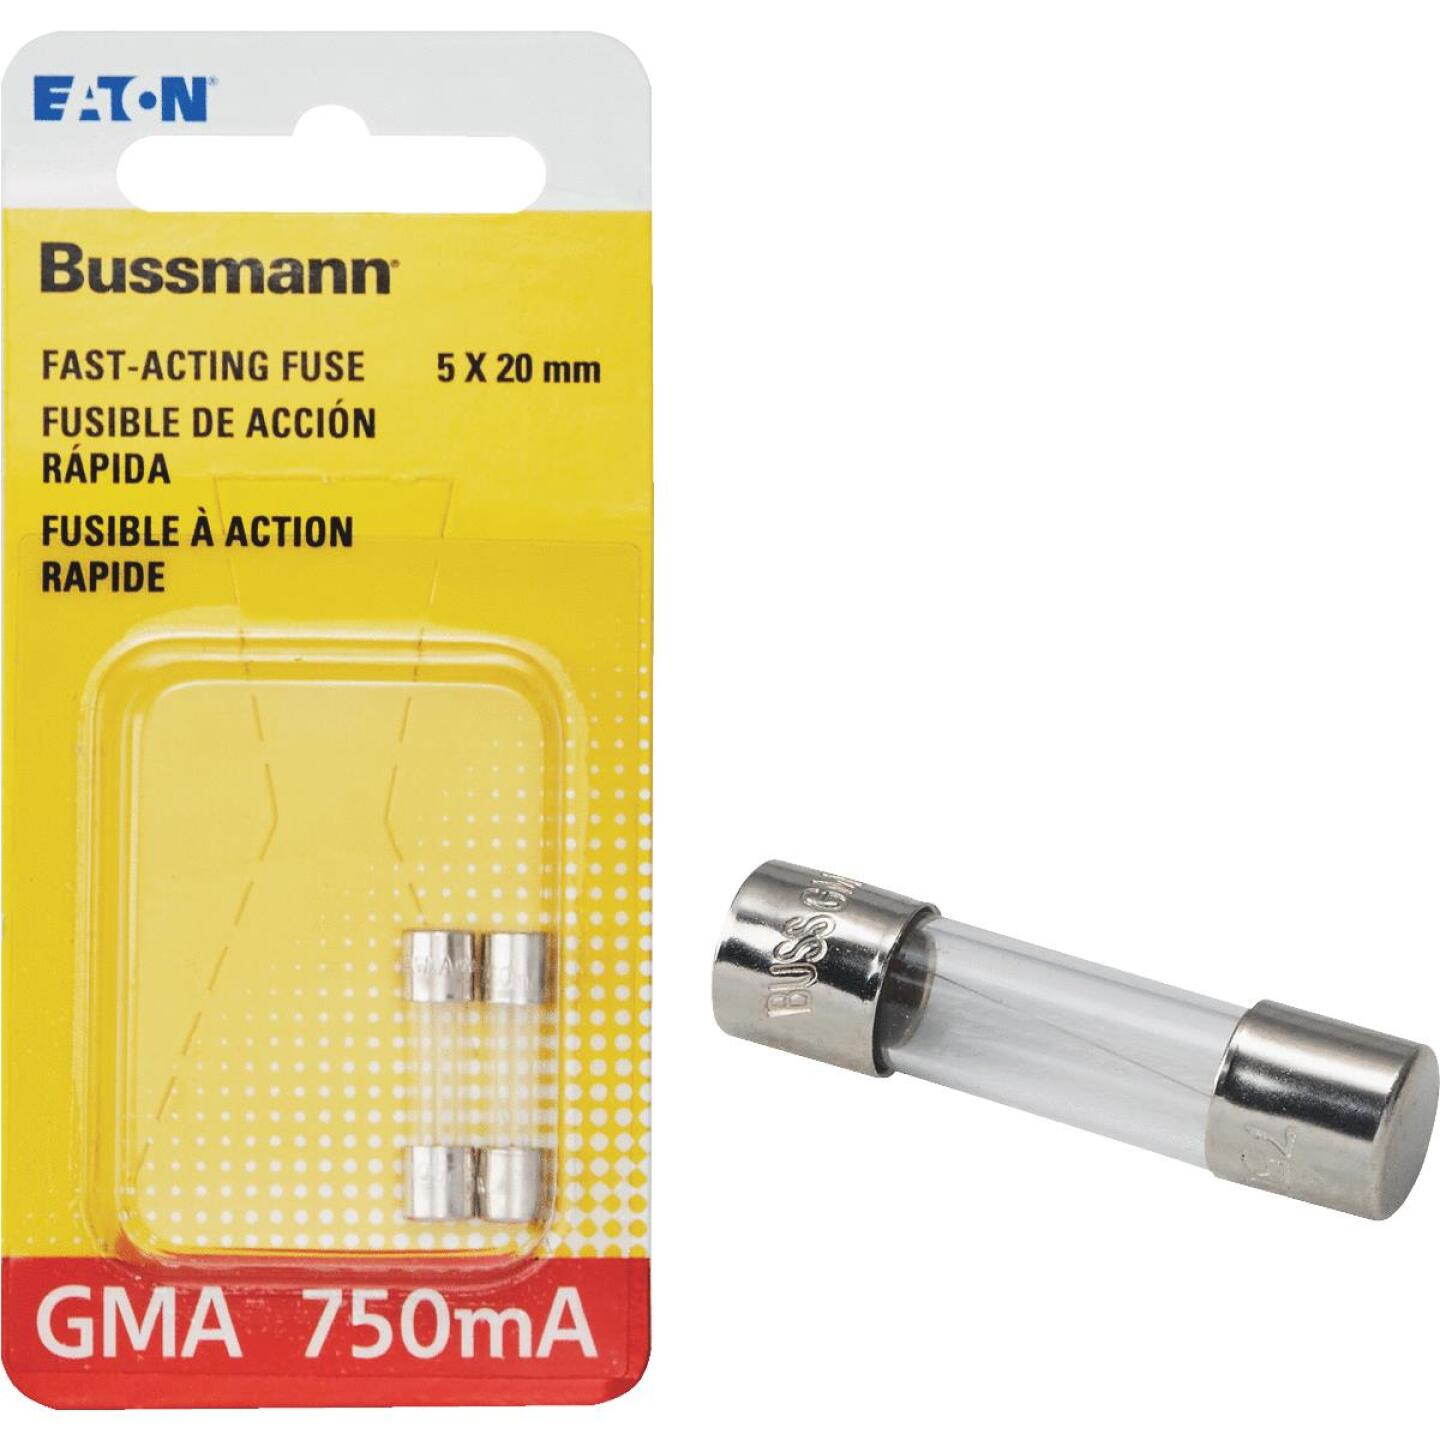 Bussmann 750A GMA Glass Tube Electronic Fuse (2-Pack) Image 1